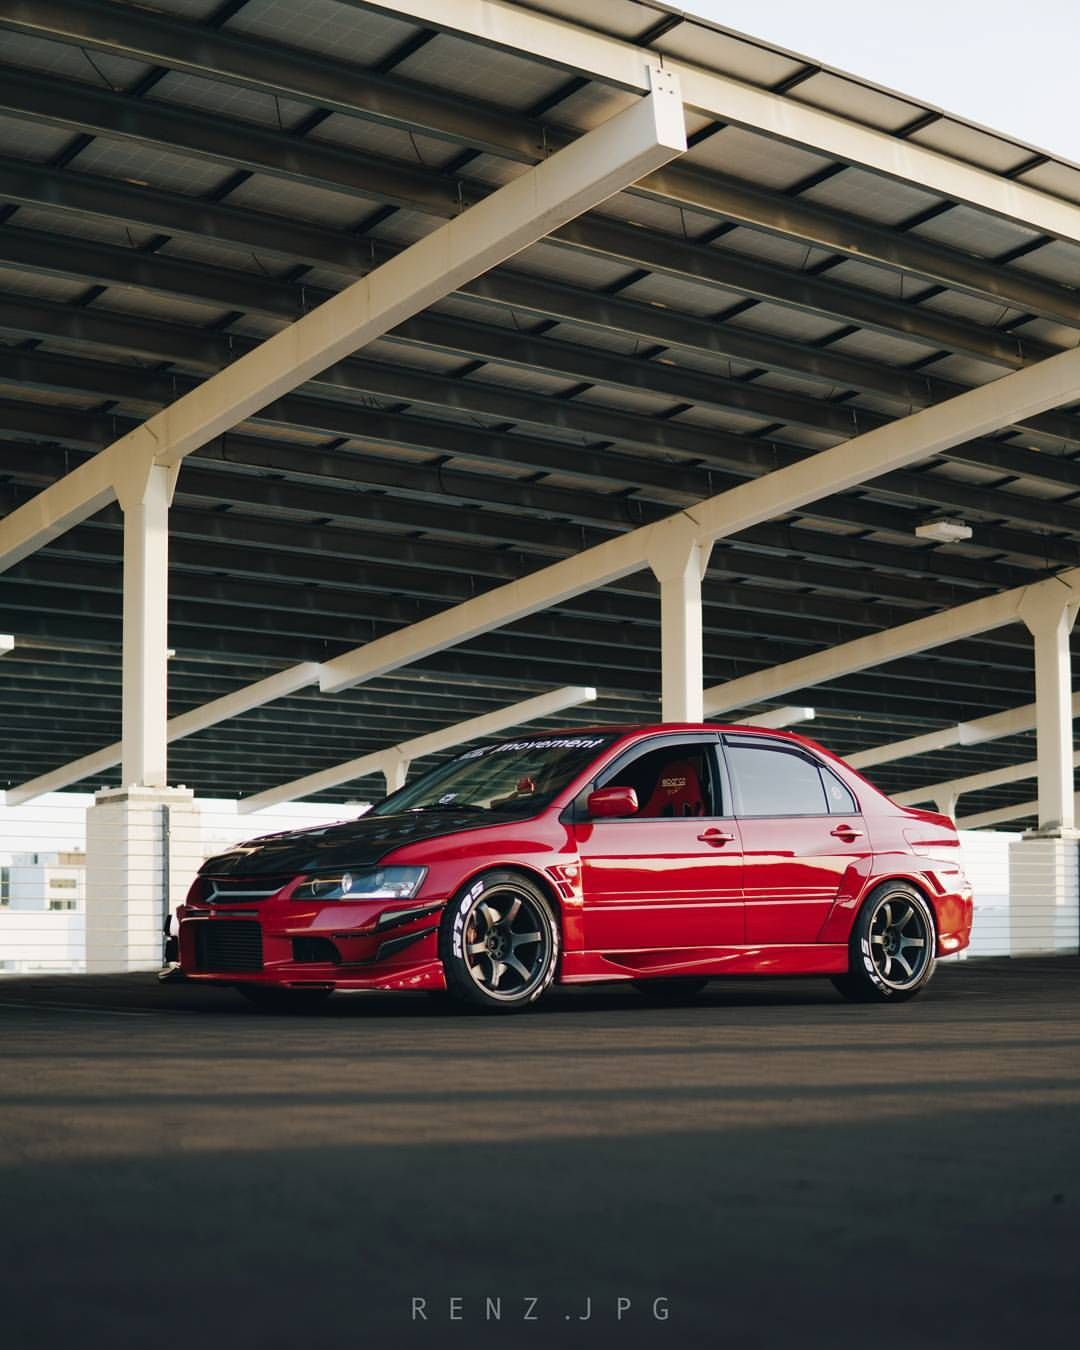 Stanced civic by jesfotography via flickr stanced 3 pinterest stanced civic by jesfotography via flickr stanced 3 pinterest jdm stance nation and honda fandeluxe Gallery